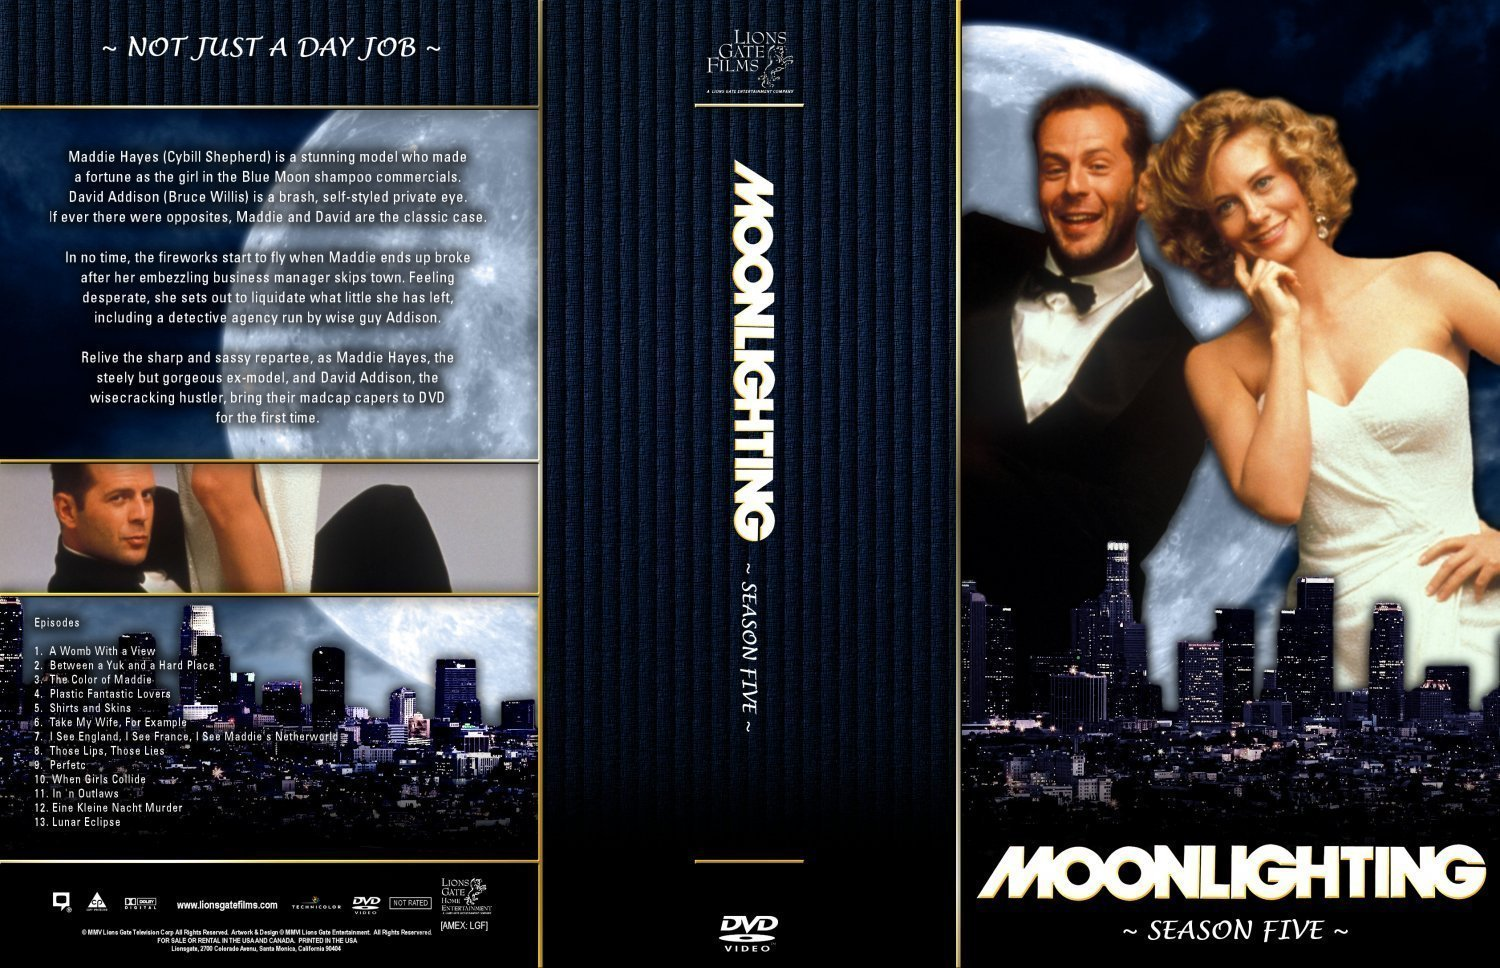 moonlighting season large dvd covers and labels moonlighting season 5 large